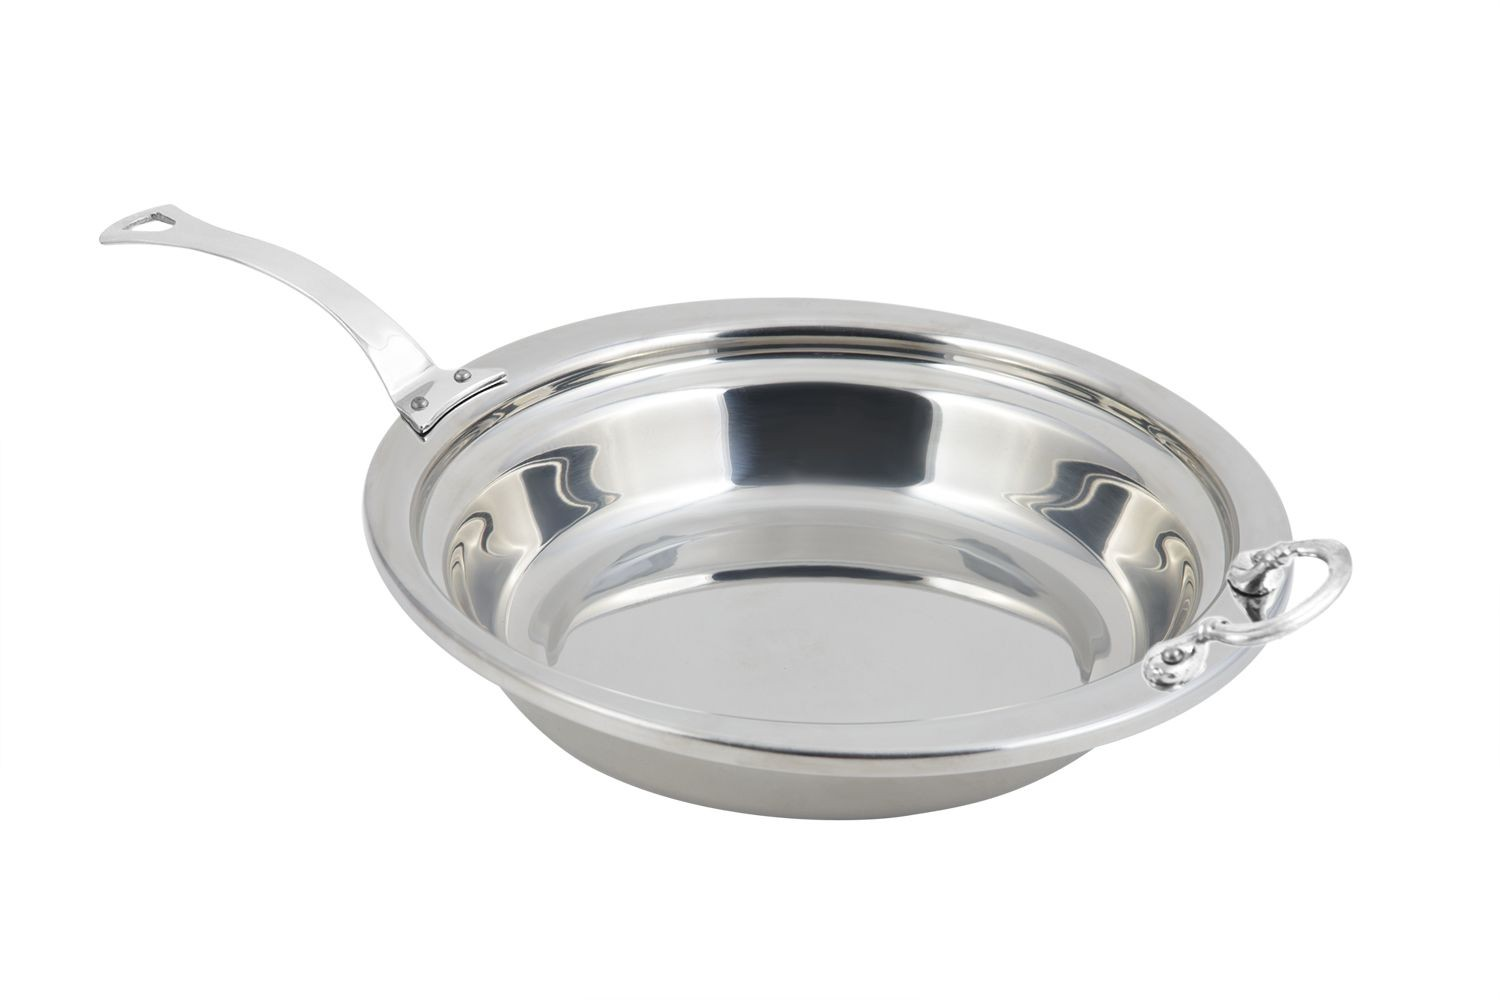 Bon Chef 5255HLSS Plain Design Casserole Dish with Long Stainless Steel Handle, 2 1/2 Qt.